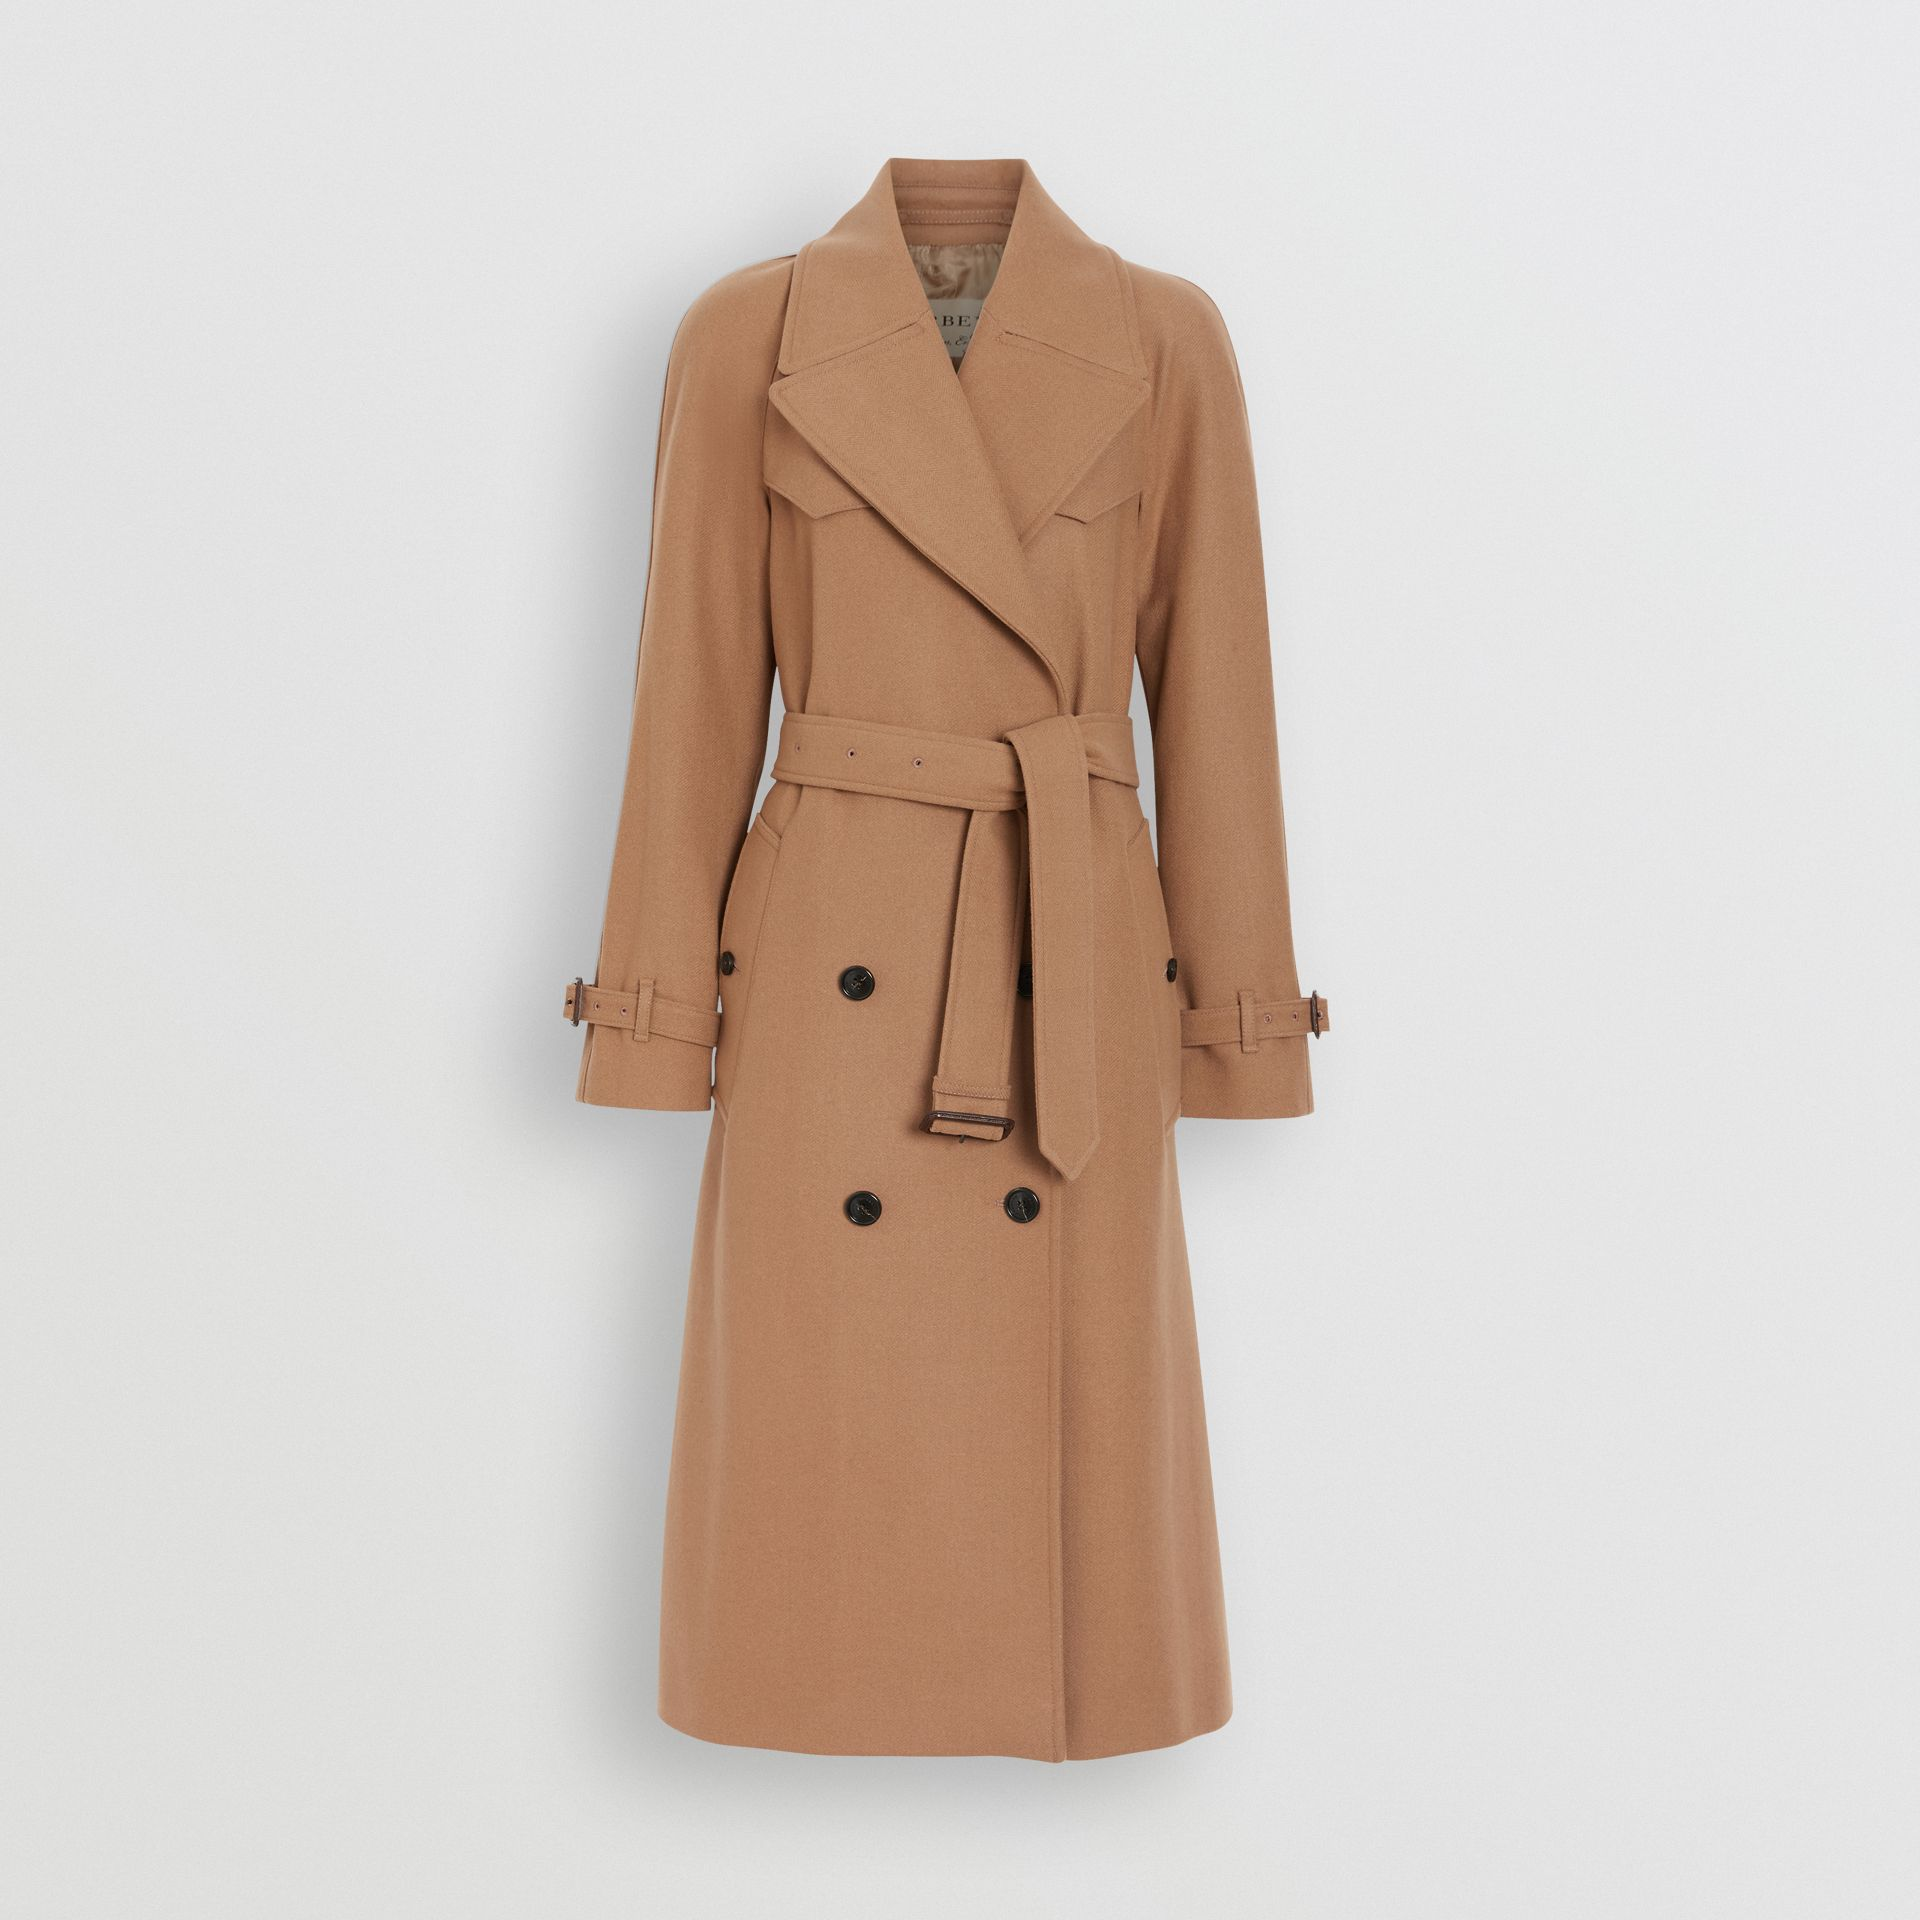 Herringbone Wool Cashmere Blend Trench Coat in Camel - Women | Burberry - gallery image 3